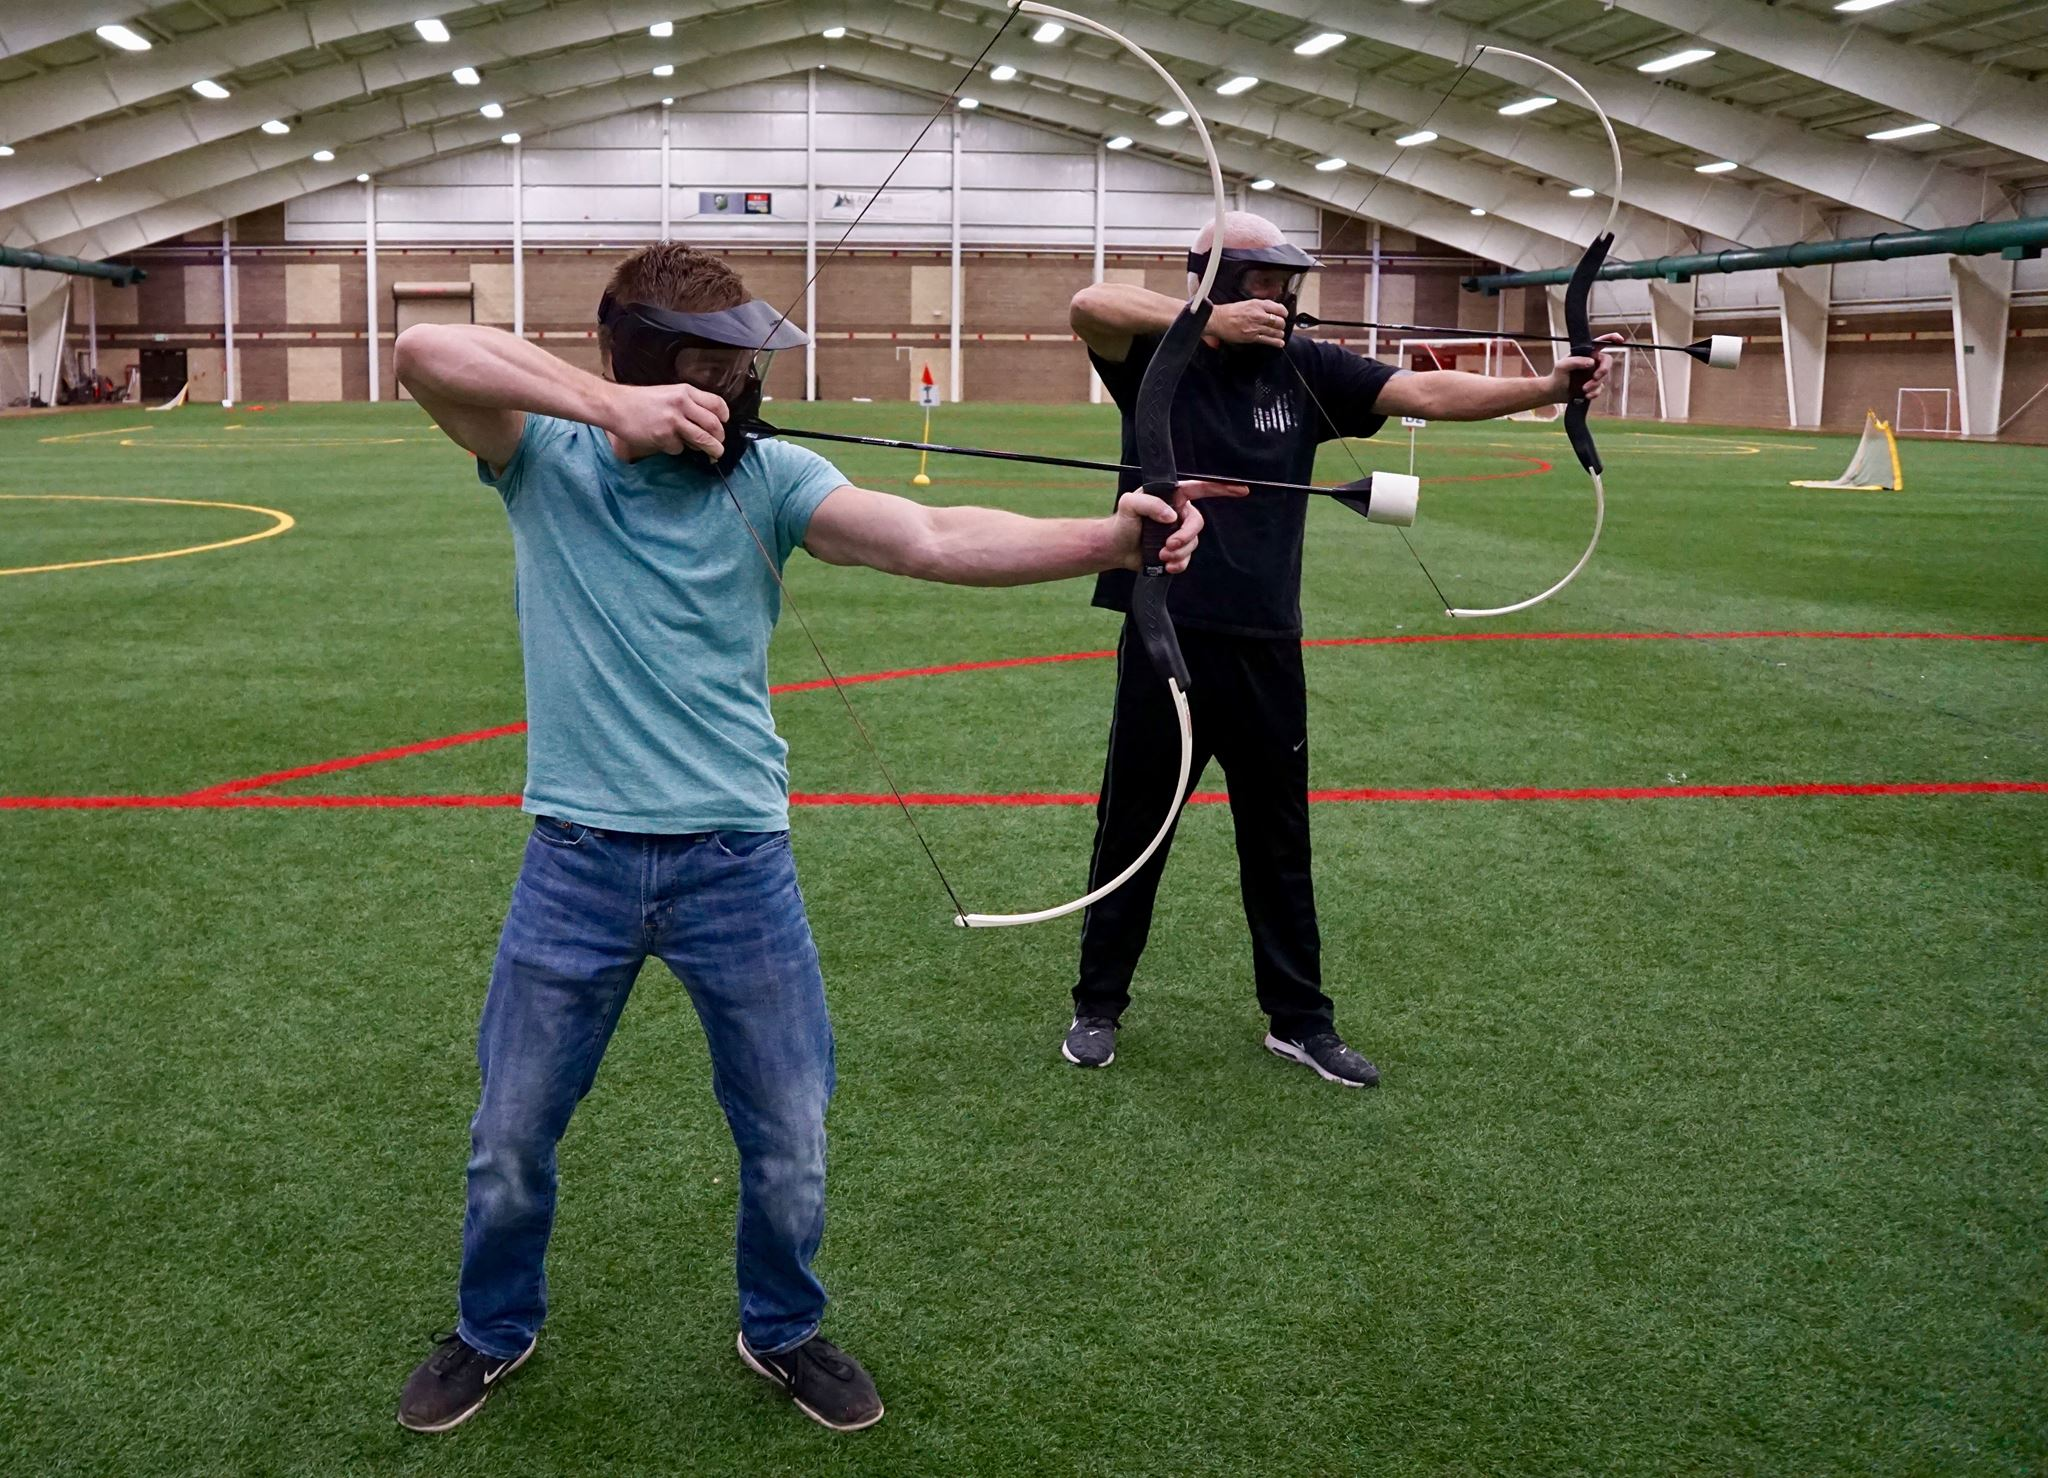 Archery Tag (https://www.facebook.com/mikesfieldhouse/